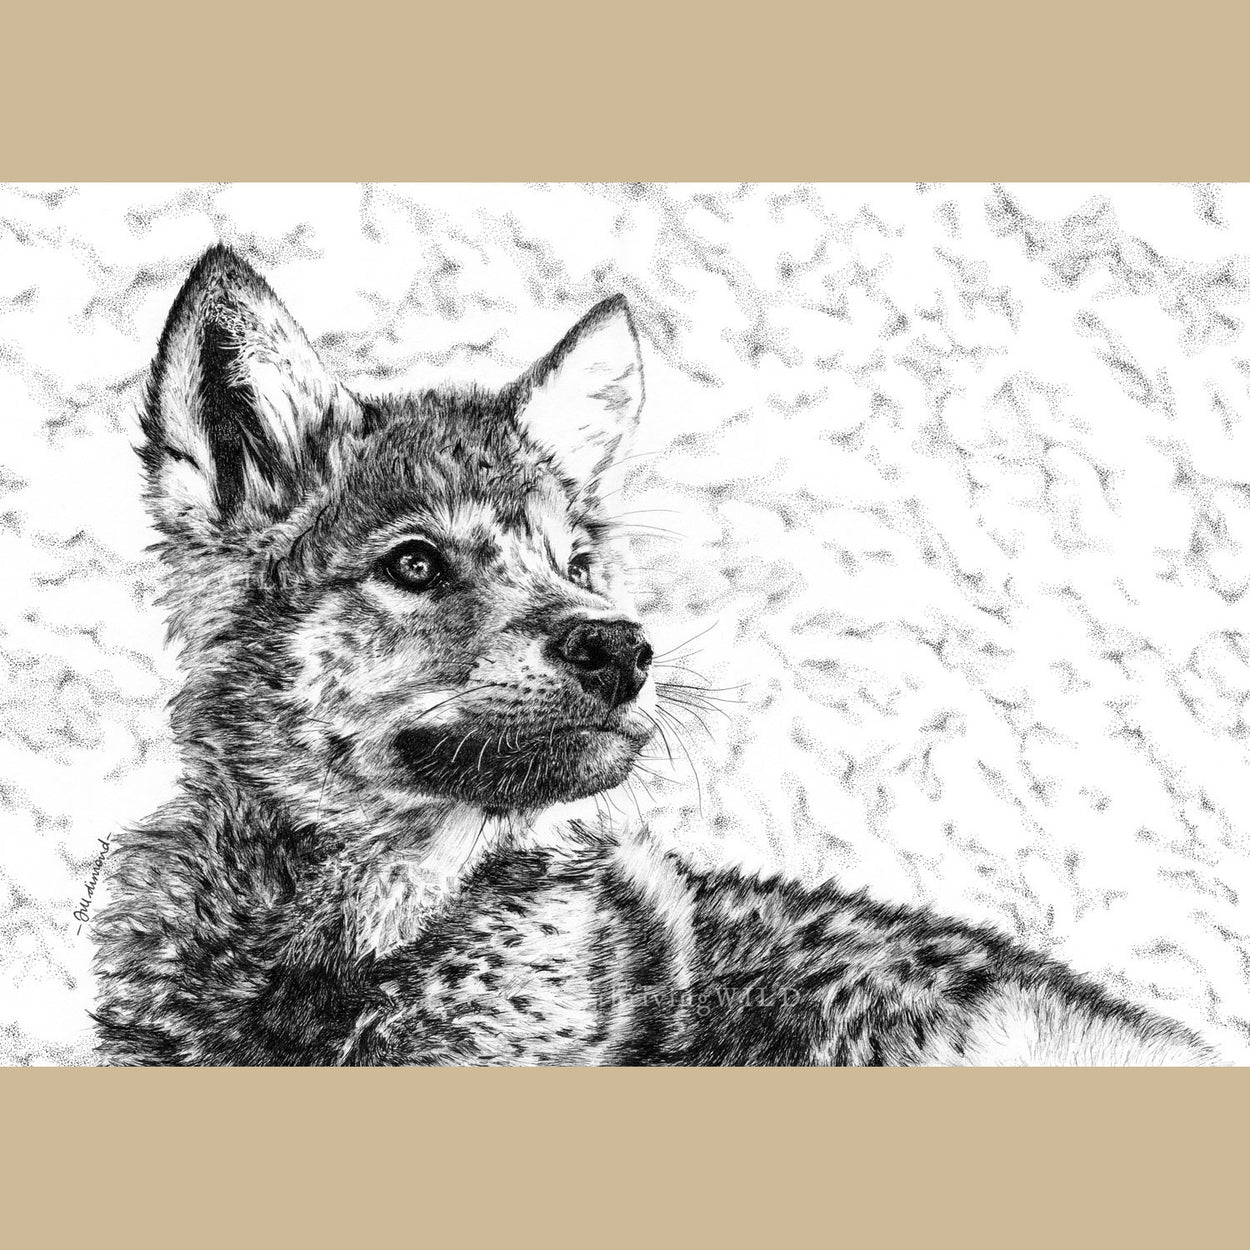 Wolf Cub Pen Drawing - The Thriving Wild